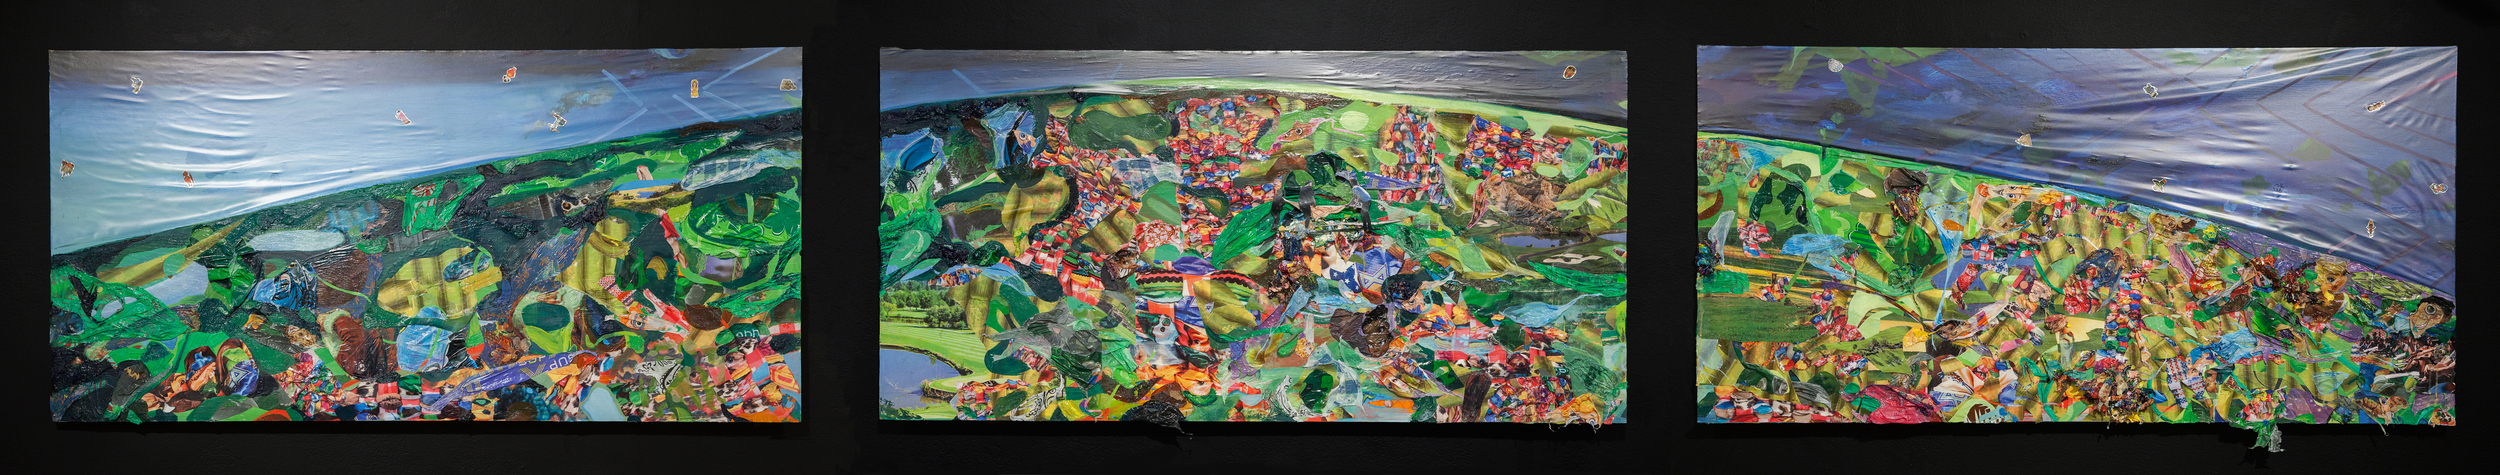 Screening for Adhesive Ancestors, 2015, oil, acrylic, plastic tablecloths, vinyl drawer liner, photos and stickers on wood panel, 24 x 108 x 4 inches